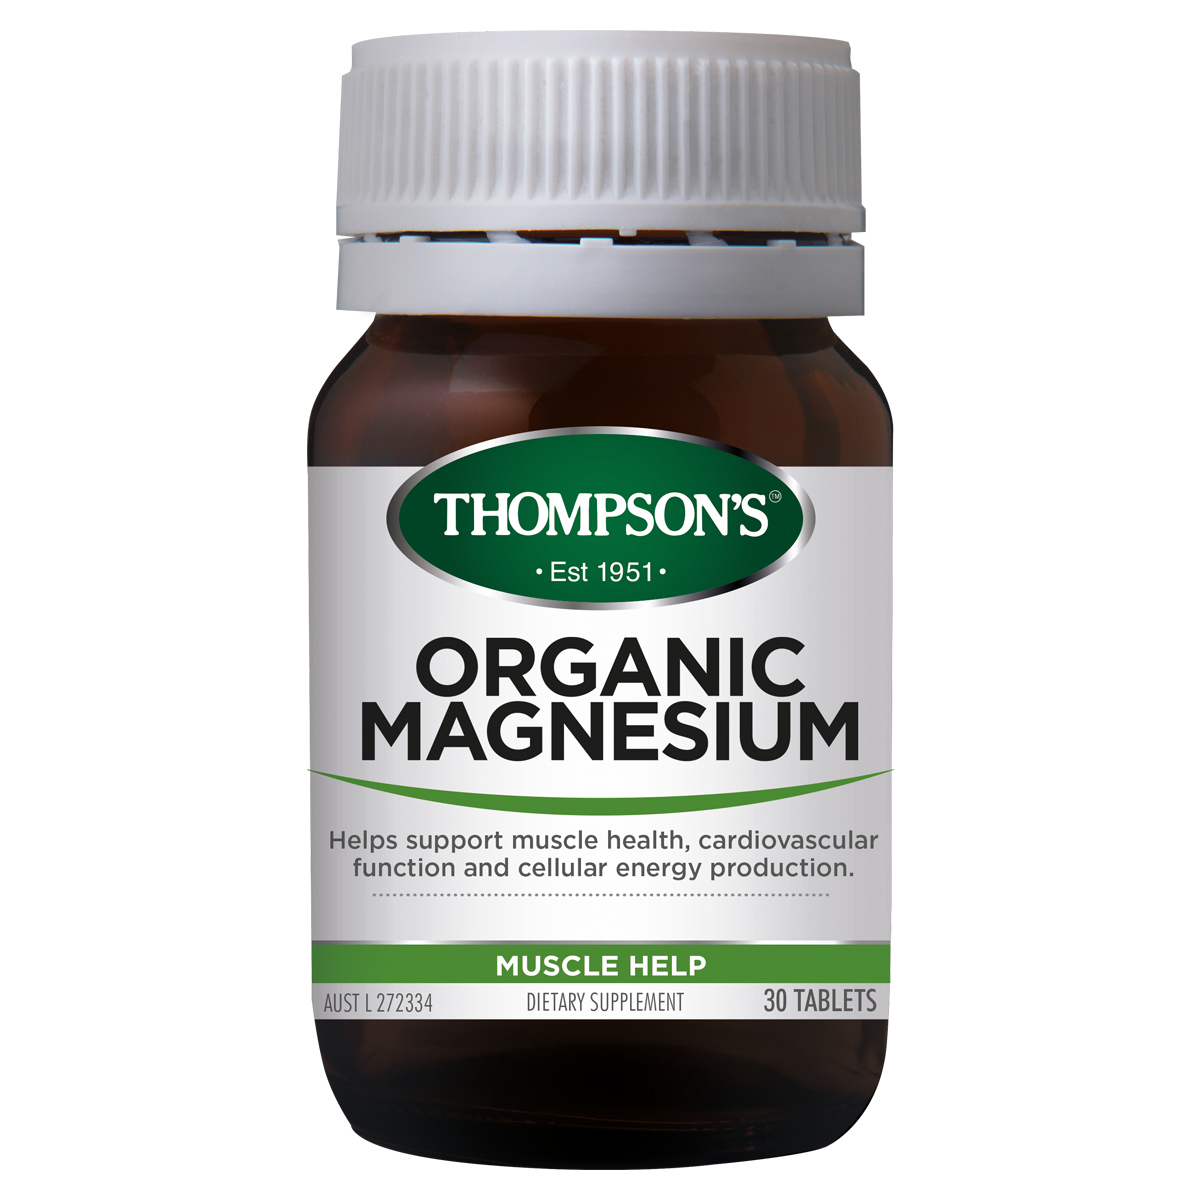 Thompsons Magnesium Organic 30 Tablets